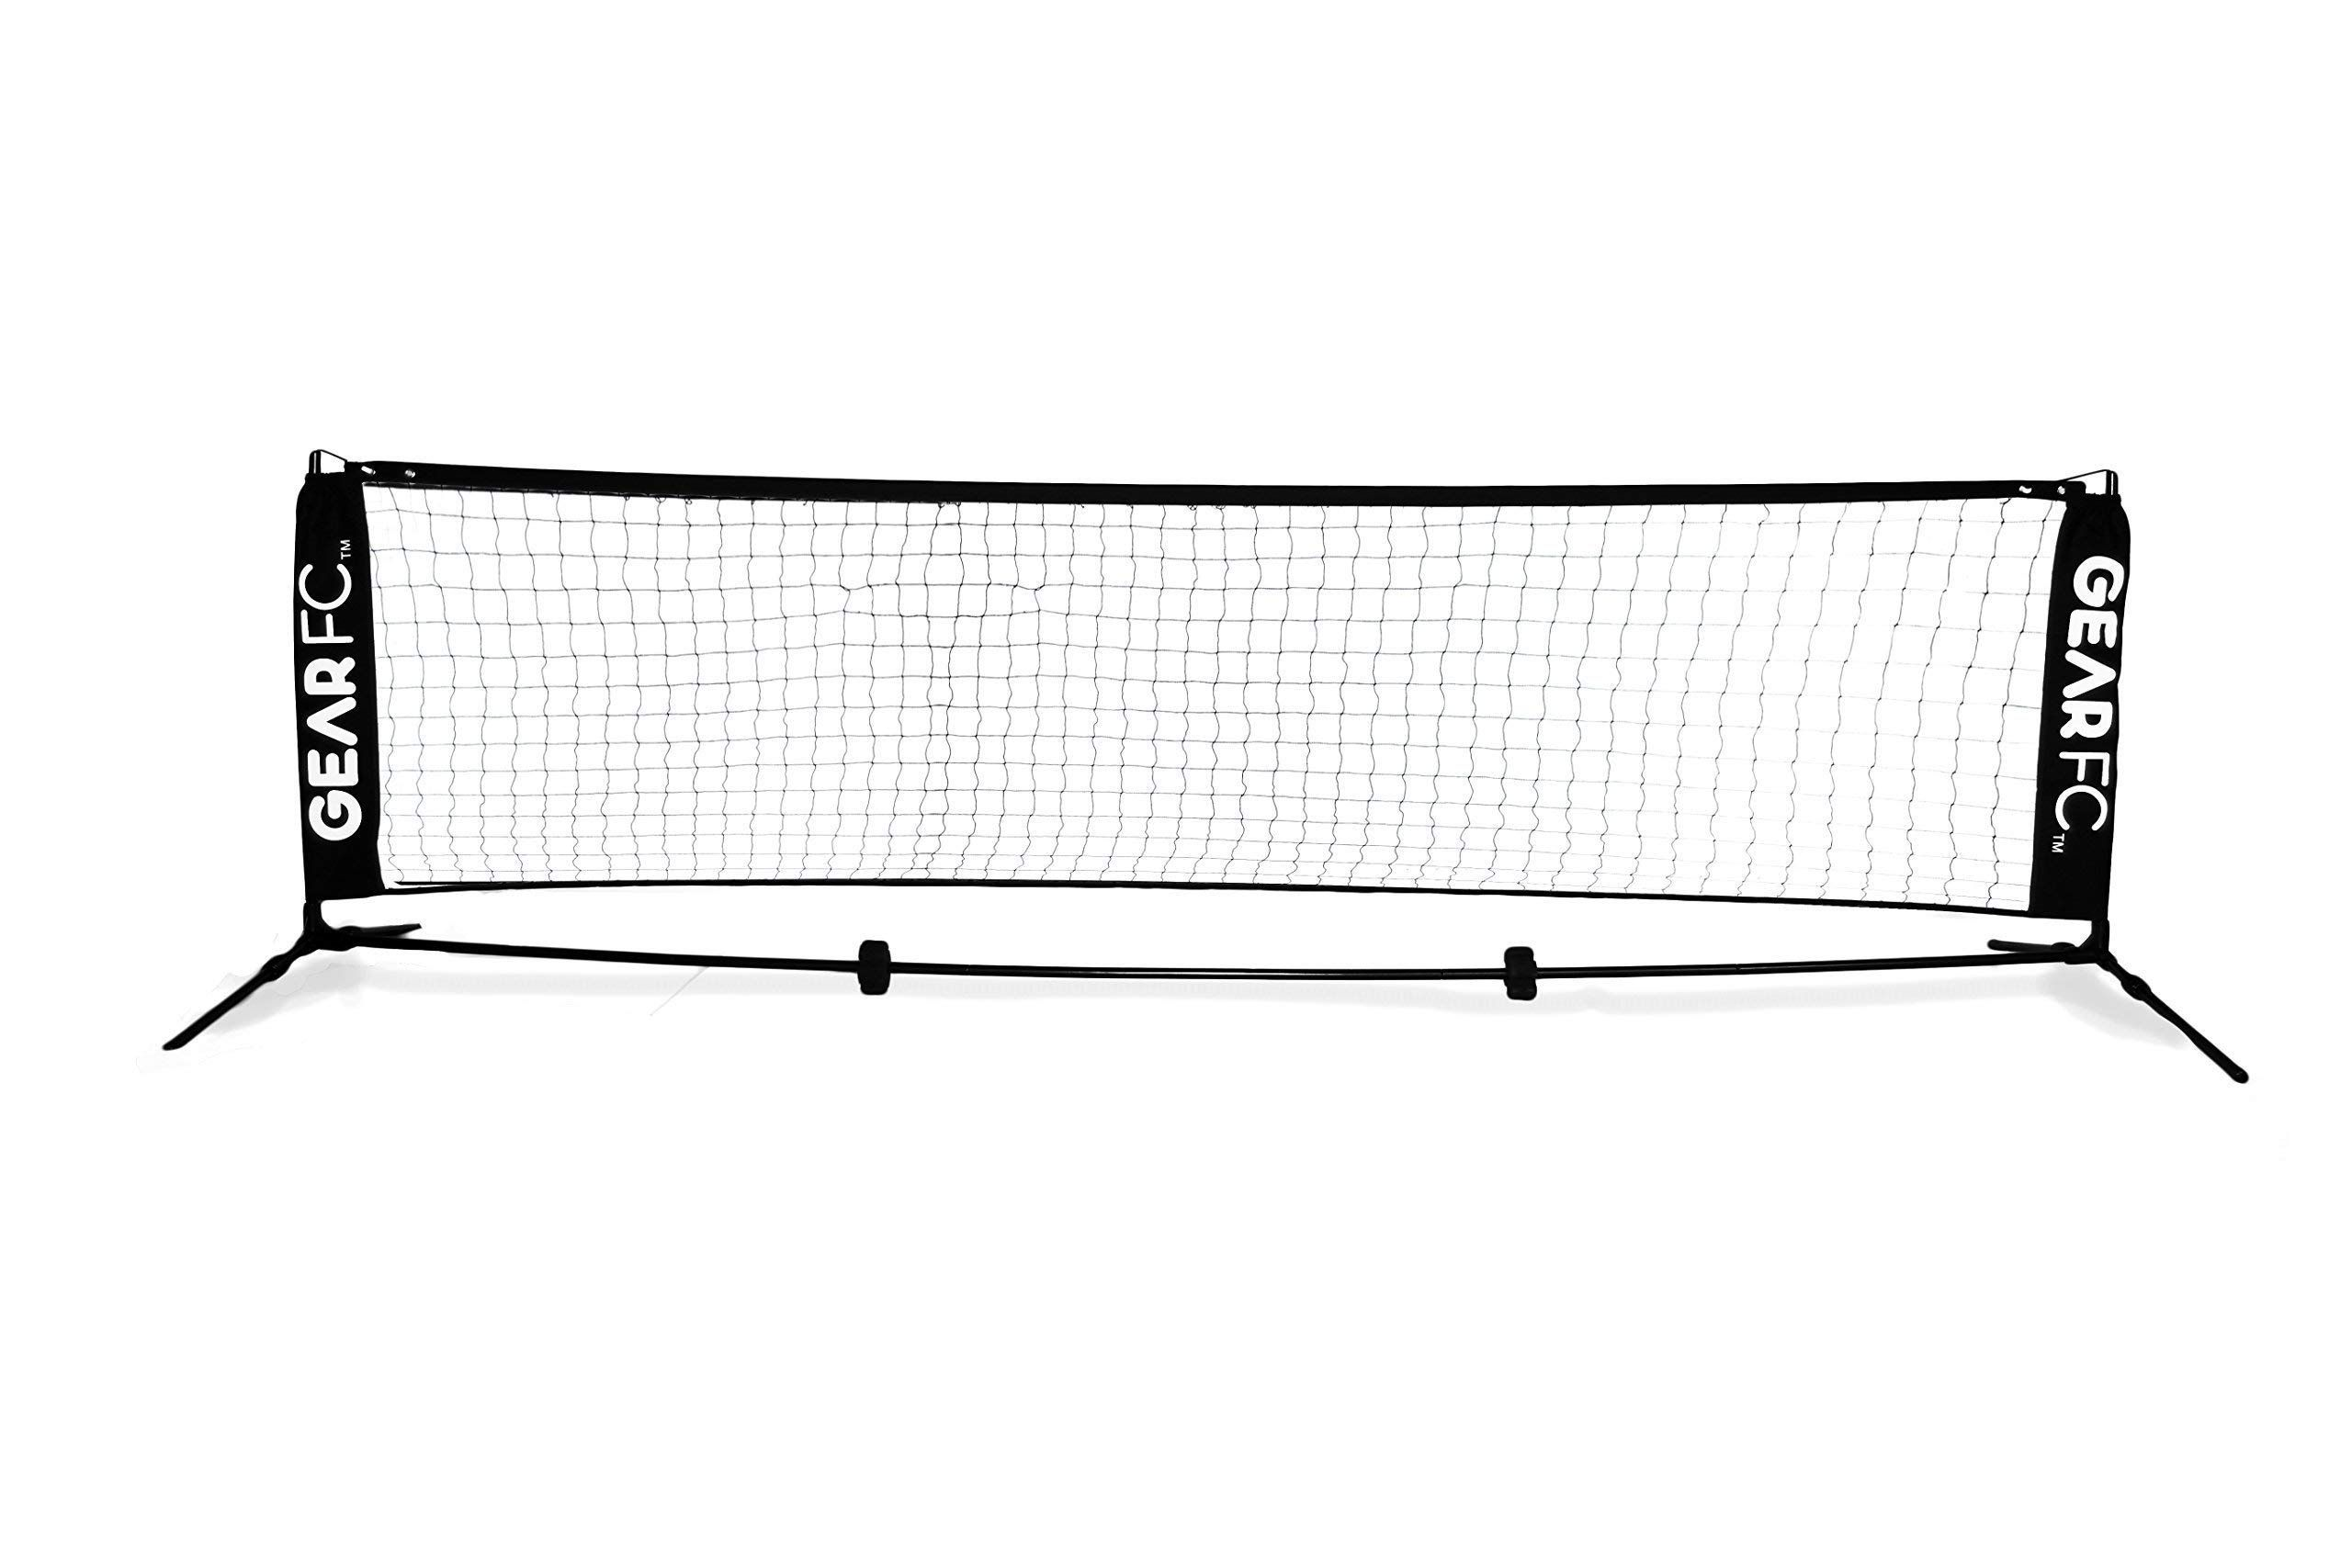 All Surface Soccer Tennis Net 9 8 Feet 3 Meters Wide Portable With Carrying Bag Find Out More About The Great Product Soccer Tennis Tennis Nets Soccer